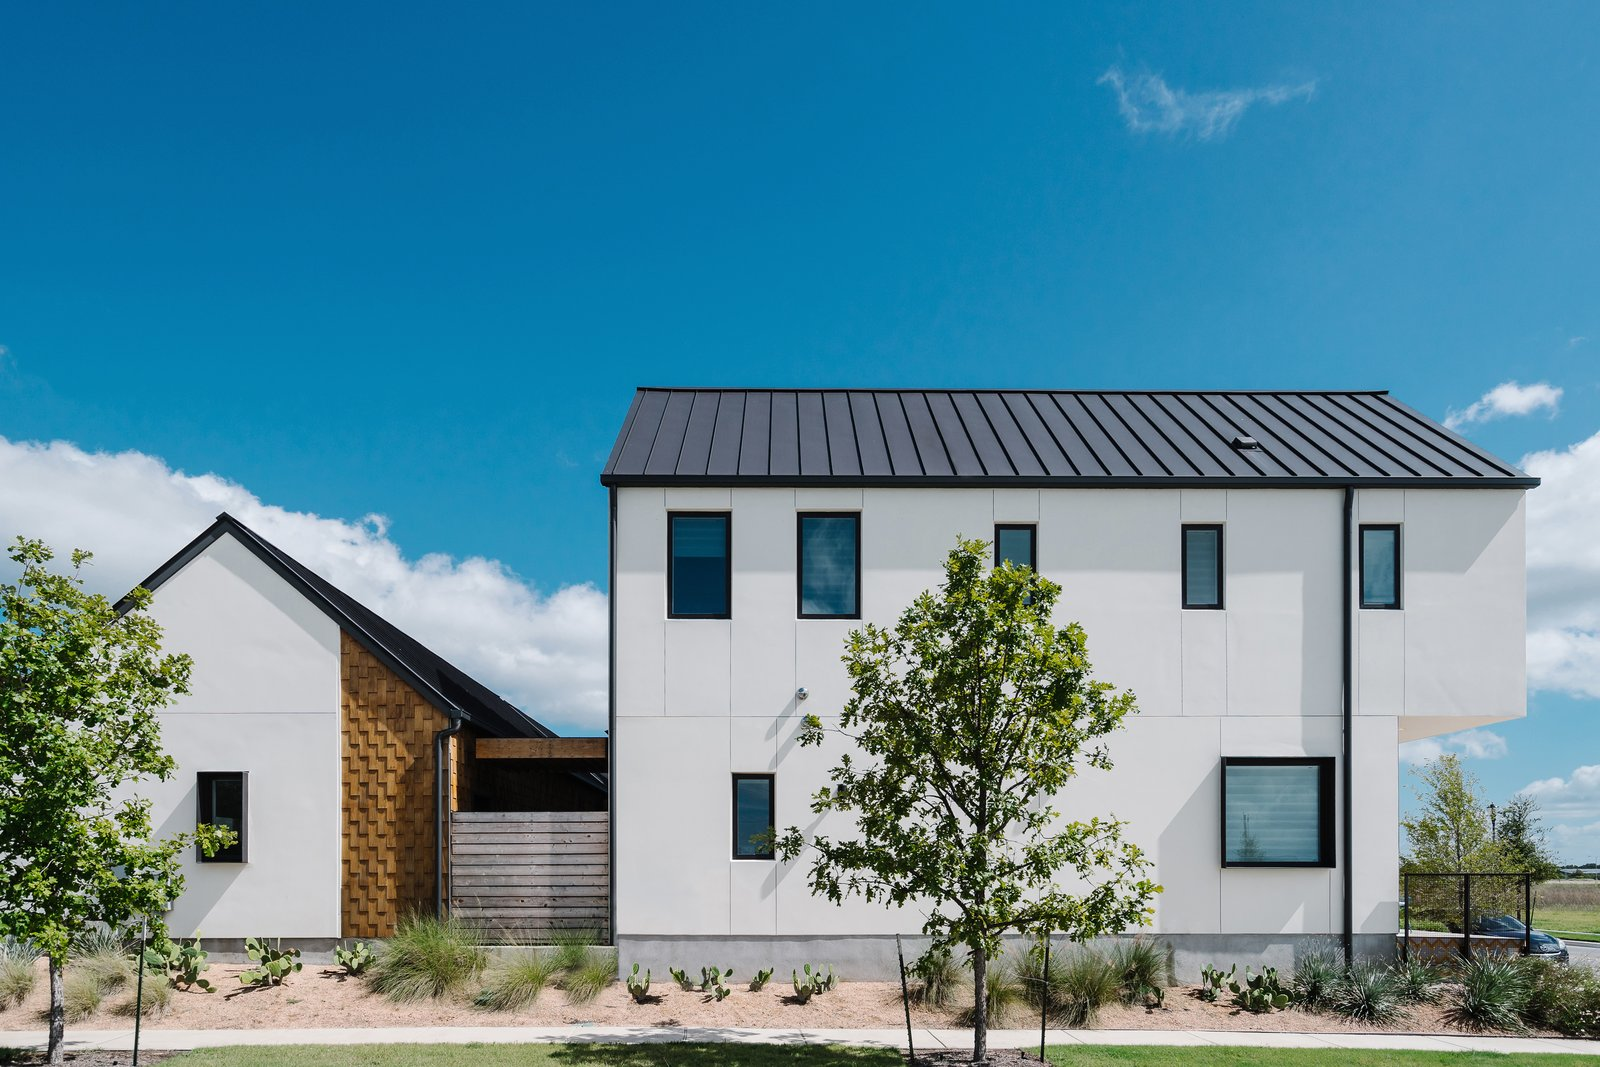 Sustainability is the Centerpiece of This New Austin Development - Photo 1 of 6 - At the back of the houses, cedar shingles provide an unexpected moment of visual interest.